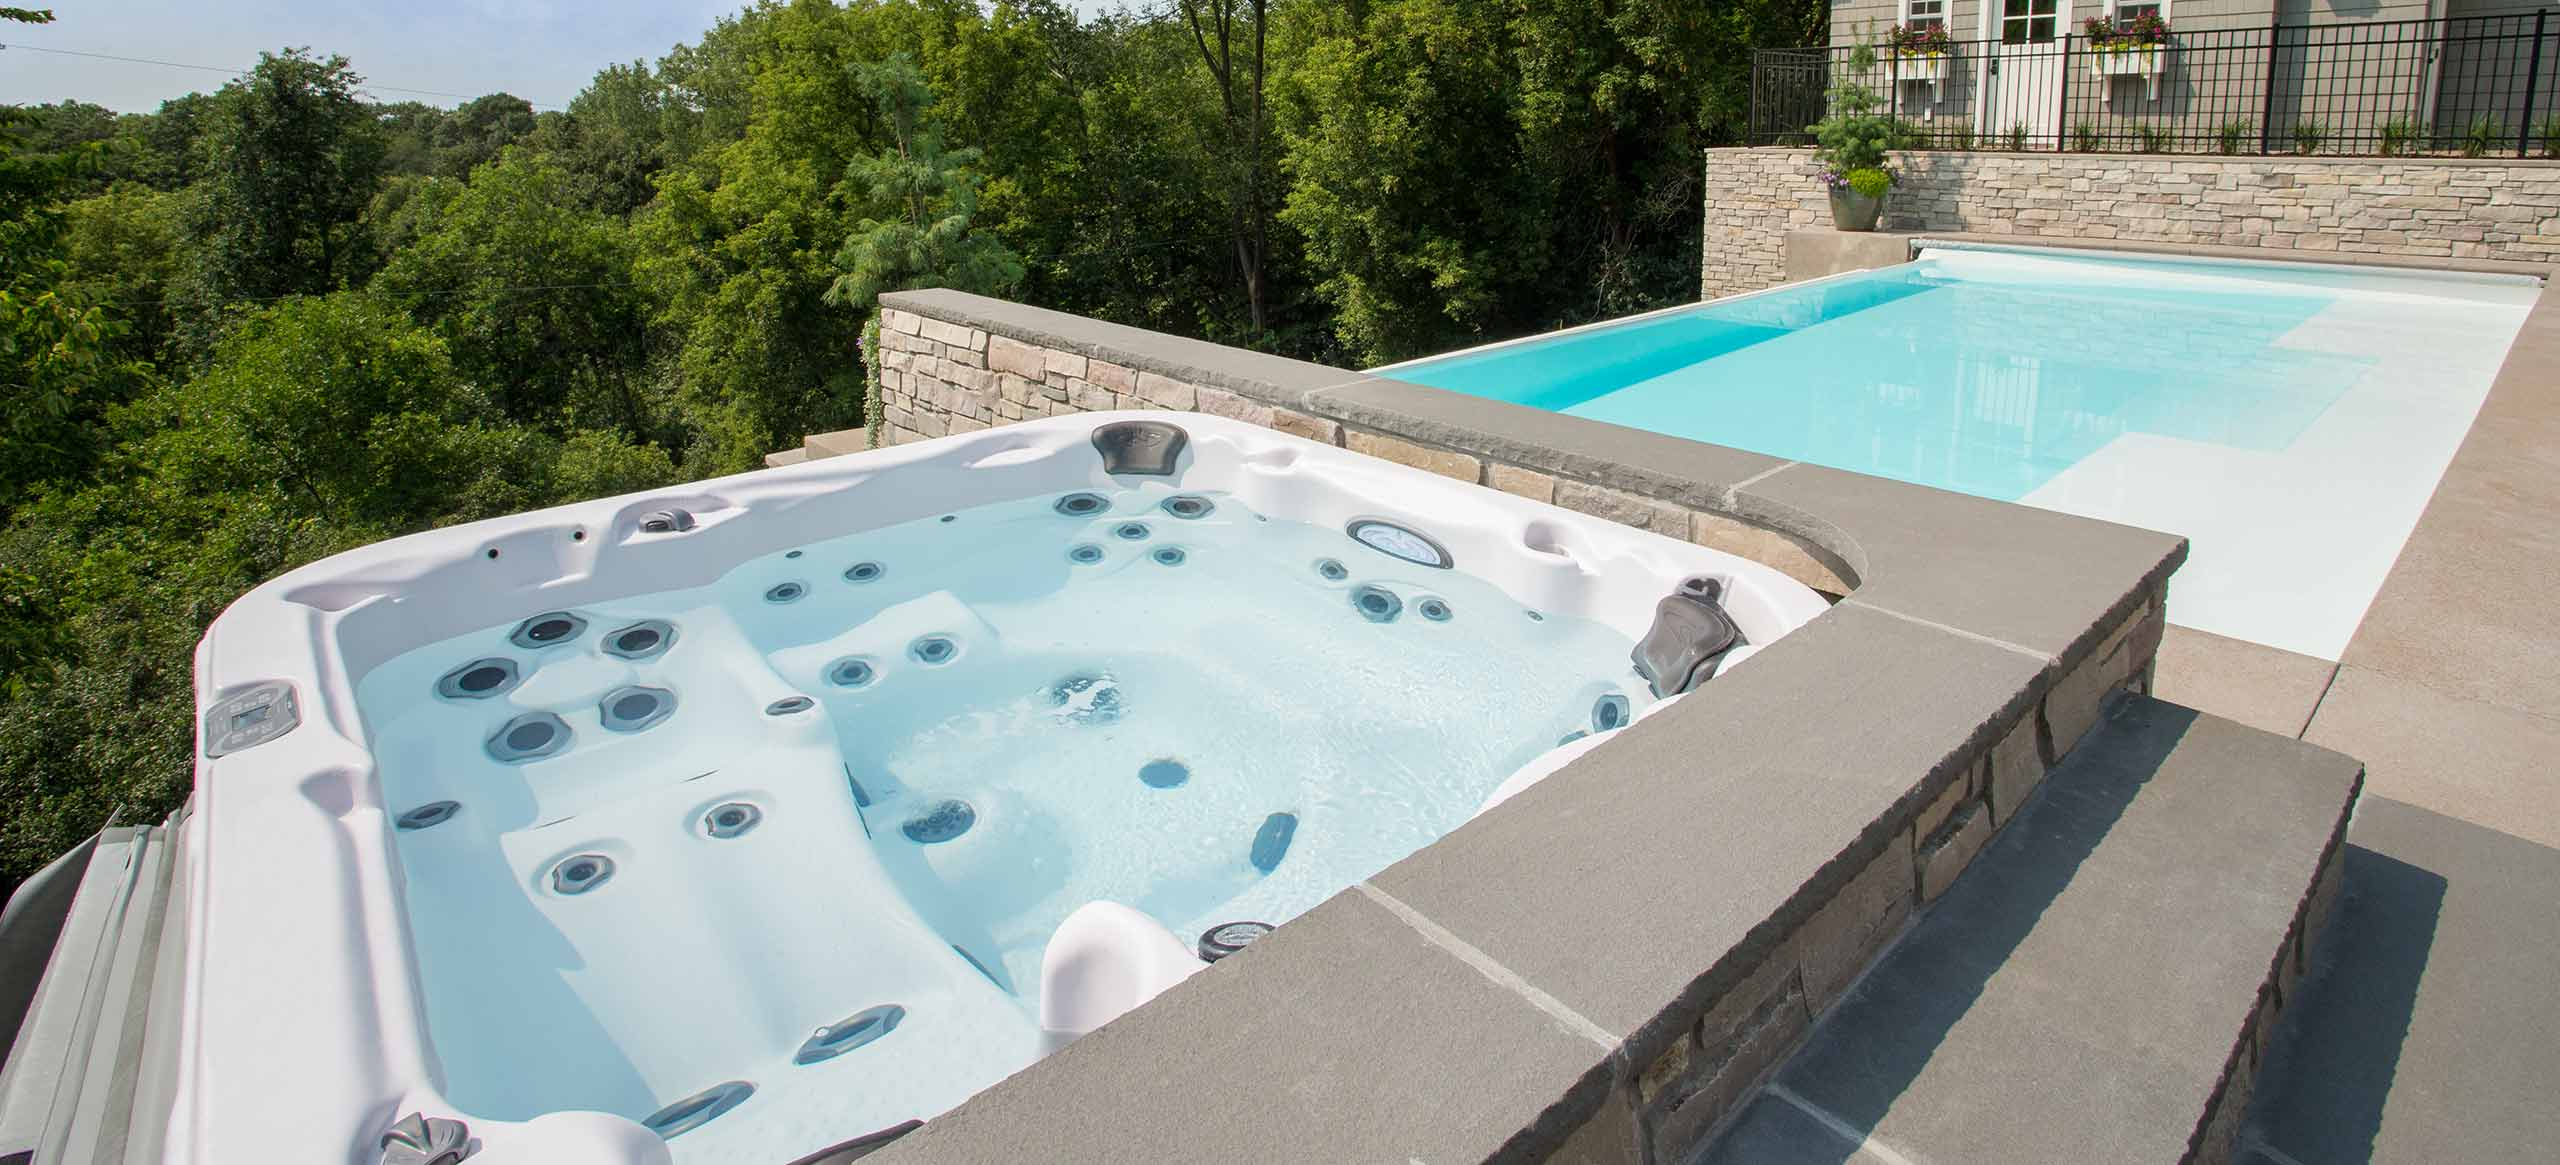 Dimension One Spas Jacuzzi Group - Whirlpool & Living